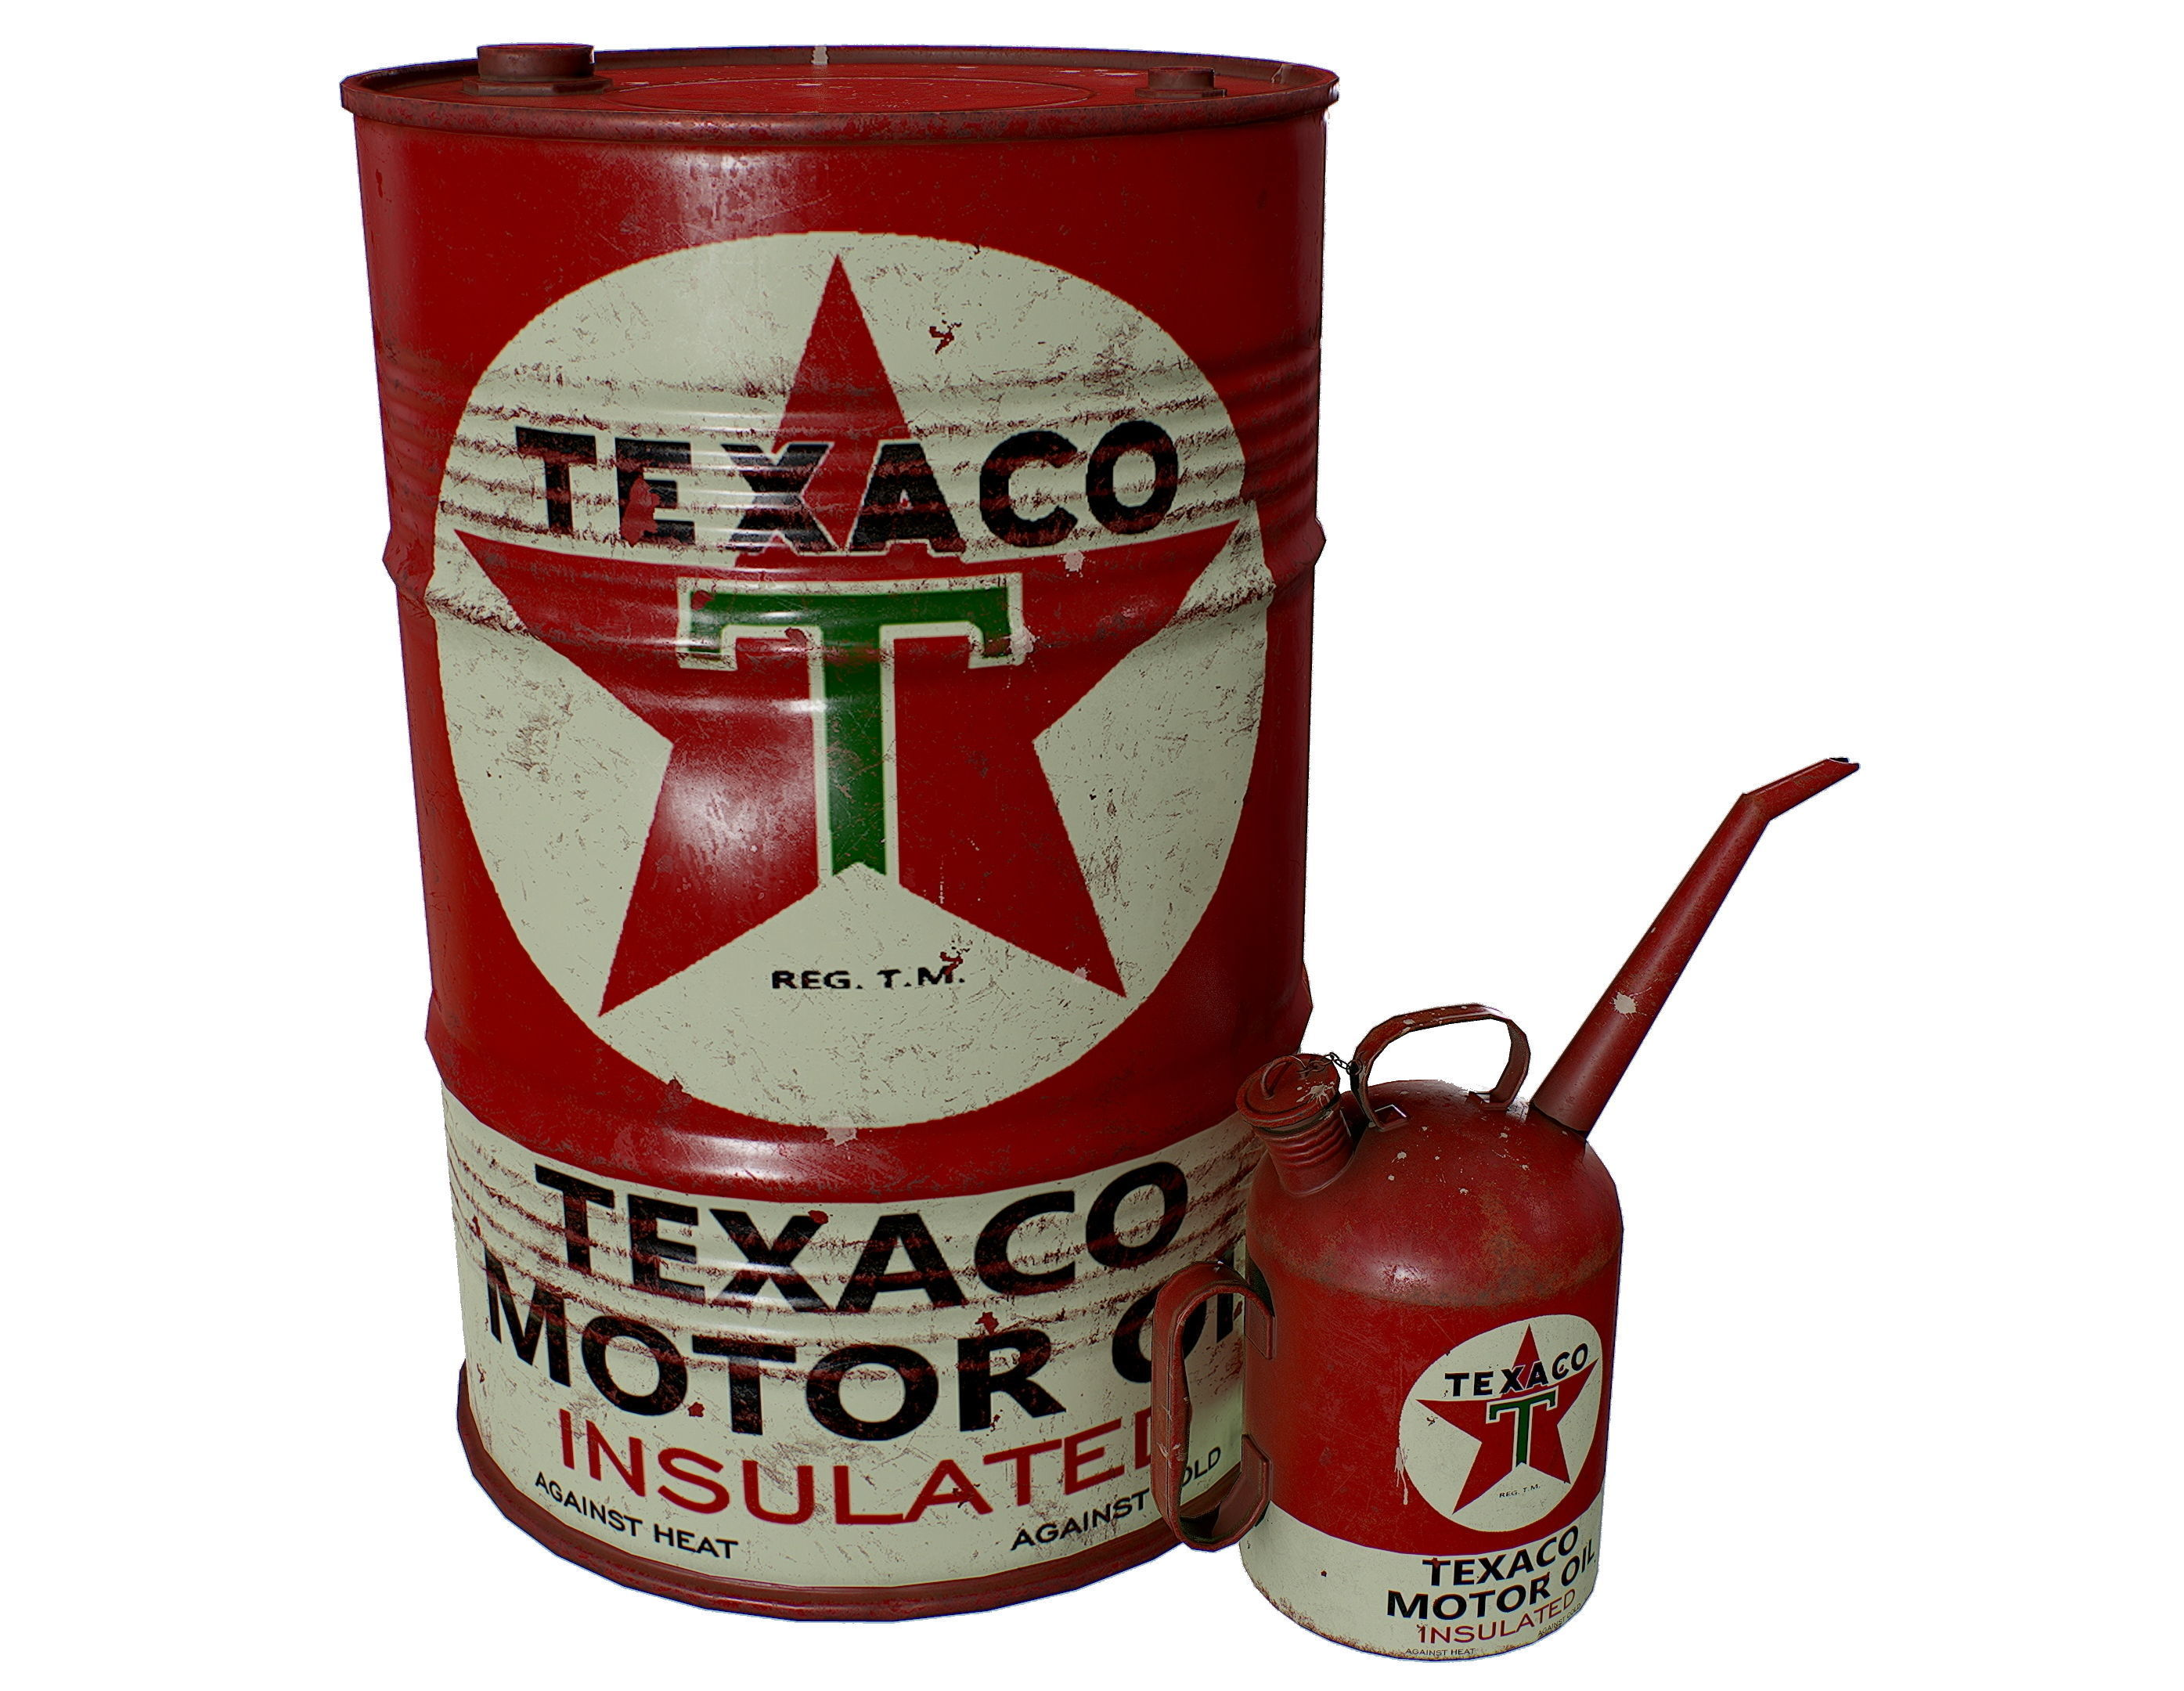 Old TEXACO Motor Oil Barrel and Canister